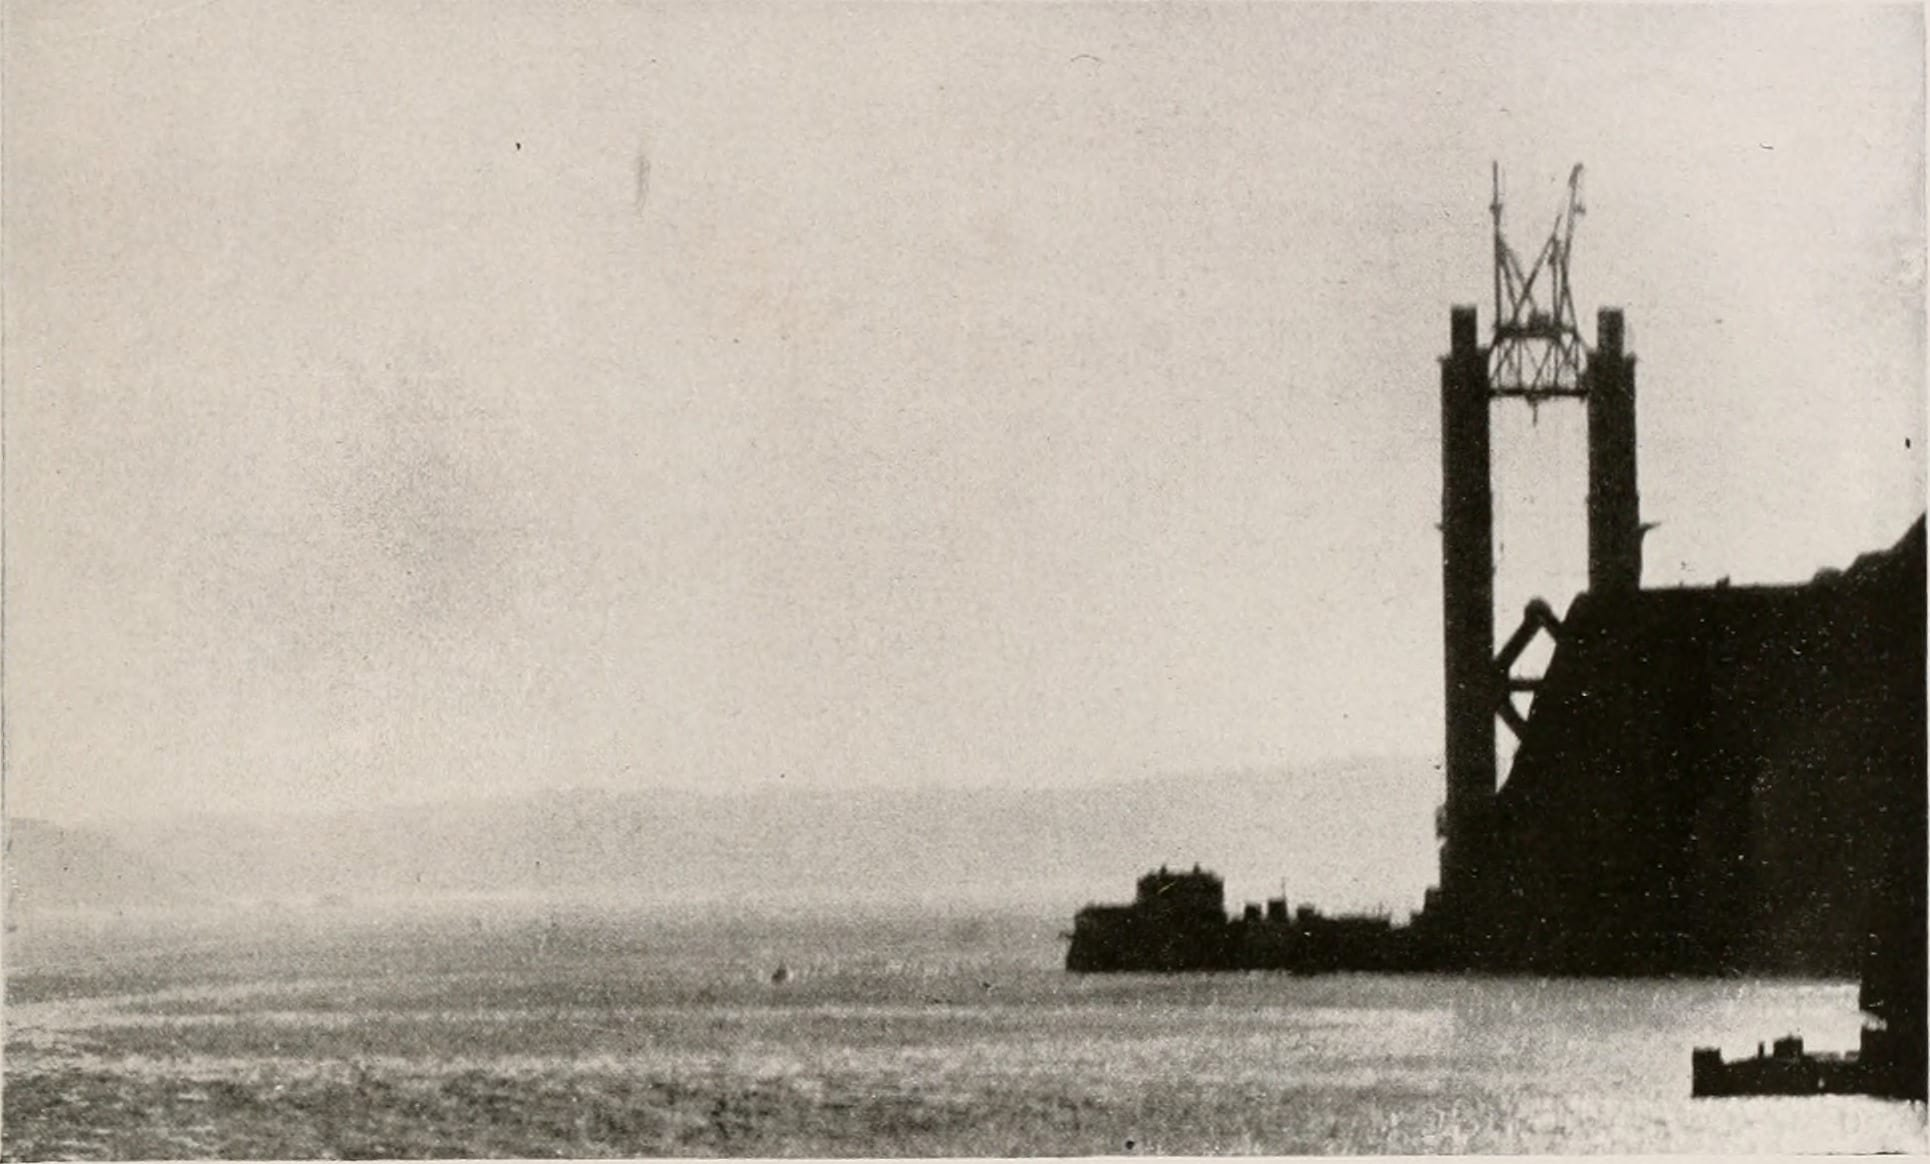 Early construction of the Golden Gate Bridge, the type of big mega-project some would like to see get built under President Trump.